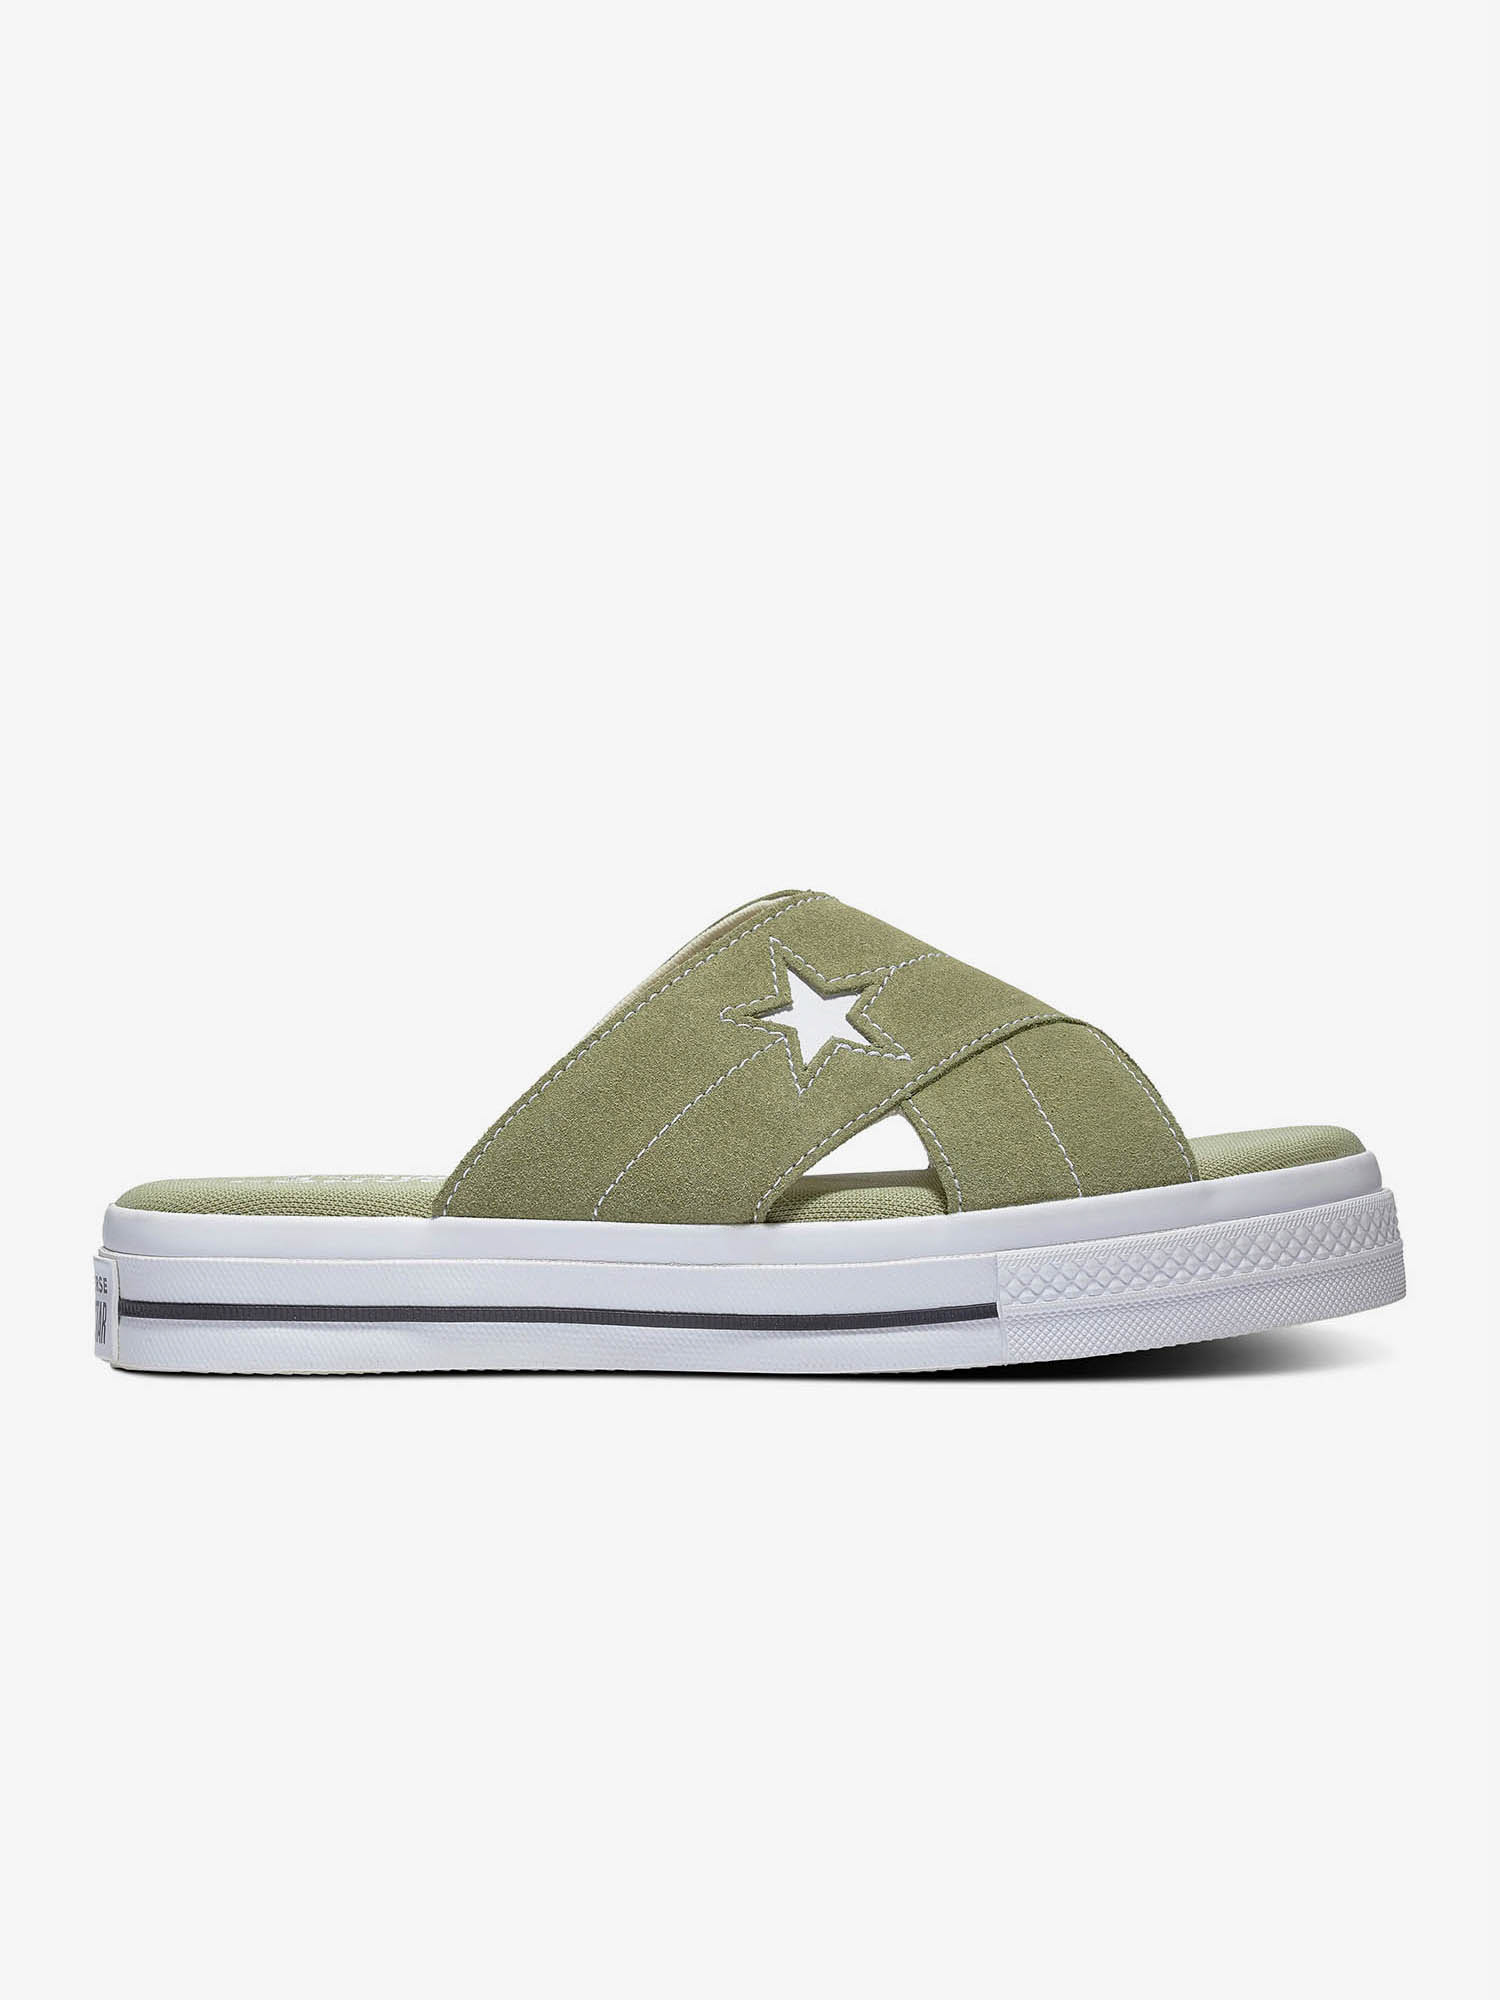 Pantofle Converse One Star Sandal (1)